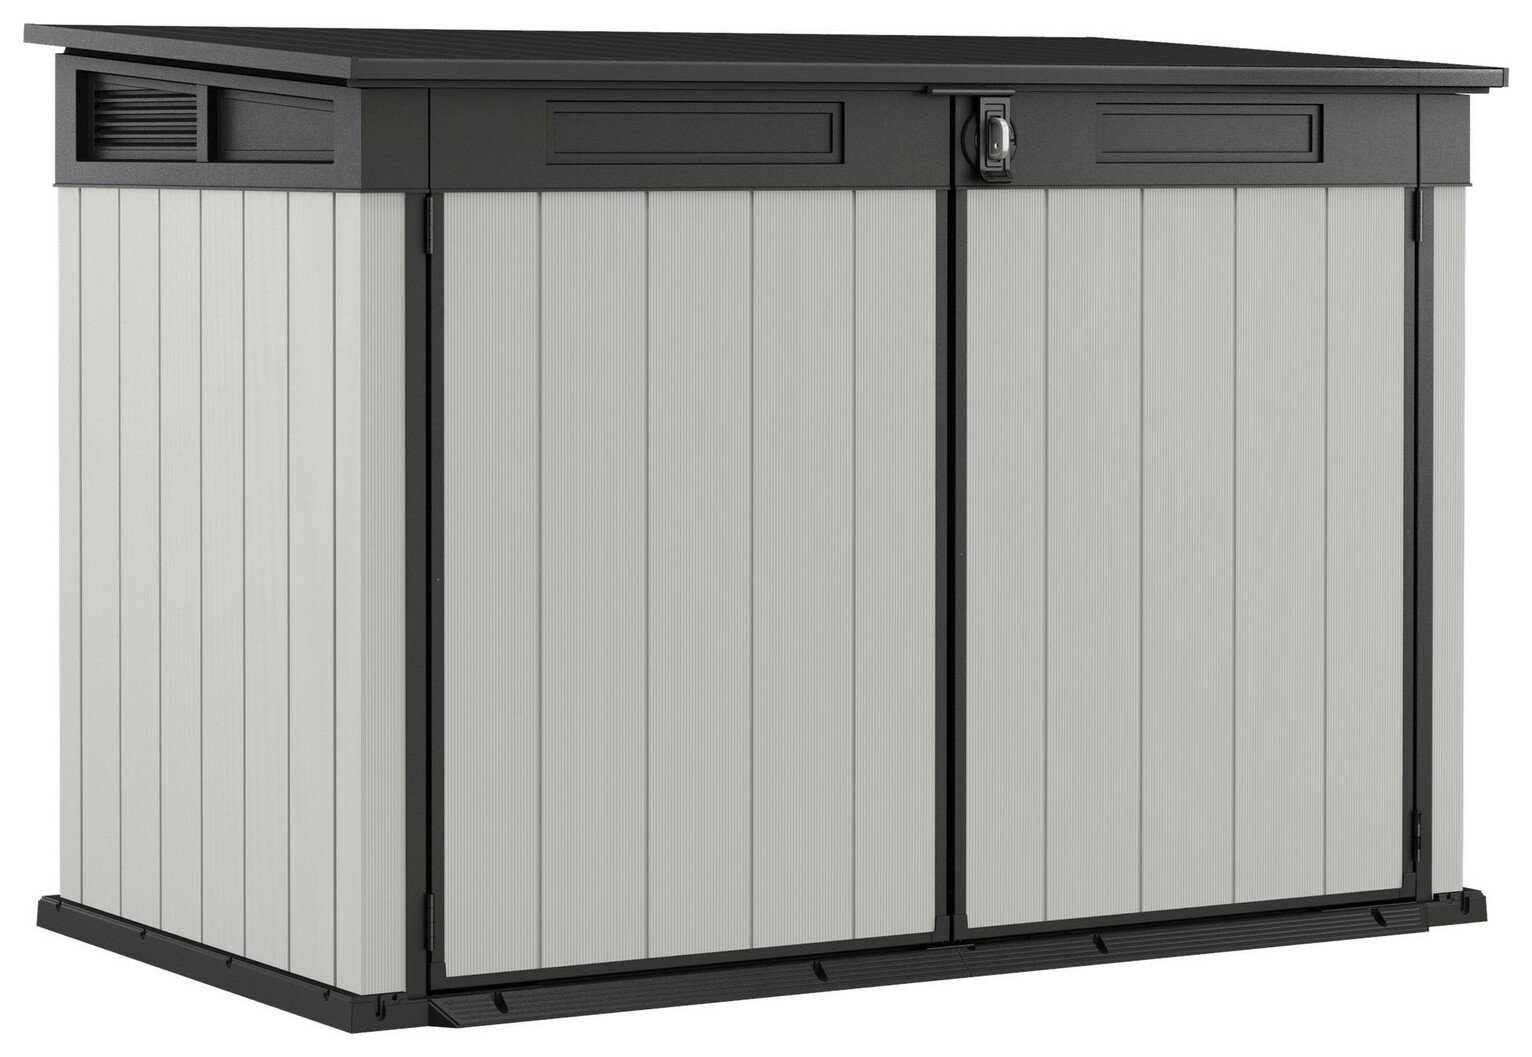 Keter Store It Out Premier Jumbo Garden Shed 2020L - Grey